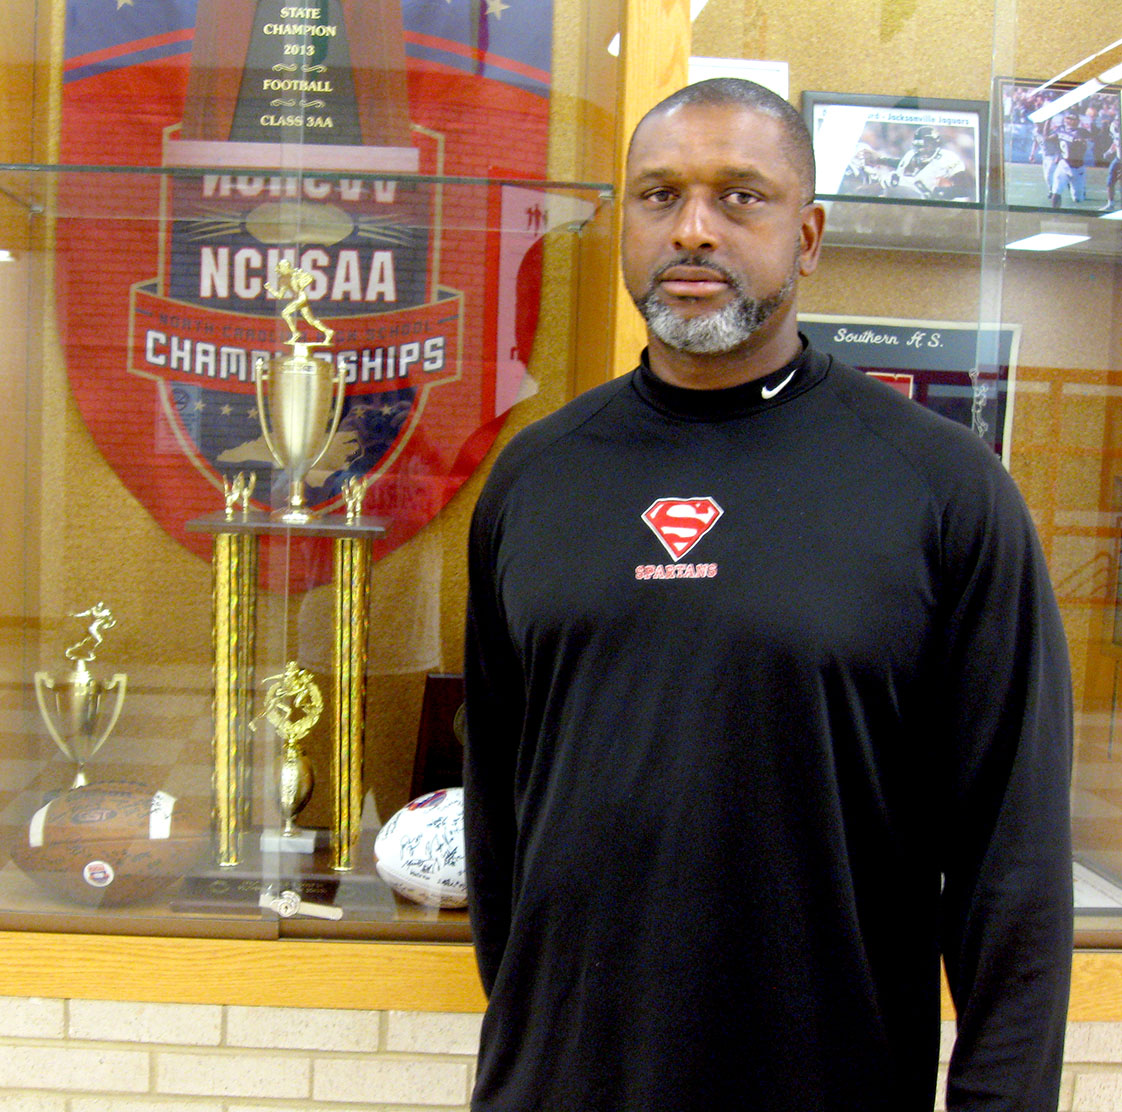 Darius Robinson stands next to Southern High School's 2013 NCHSAA Class 3-AA state championship trophy, the first in school history. Robinson was an assistant coach on last year's squad, but took over as head coach at season's end. The Spartans are currently off to a 3-0 start this year. (Staff photo by Andrew Forrest)